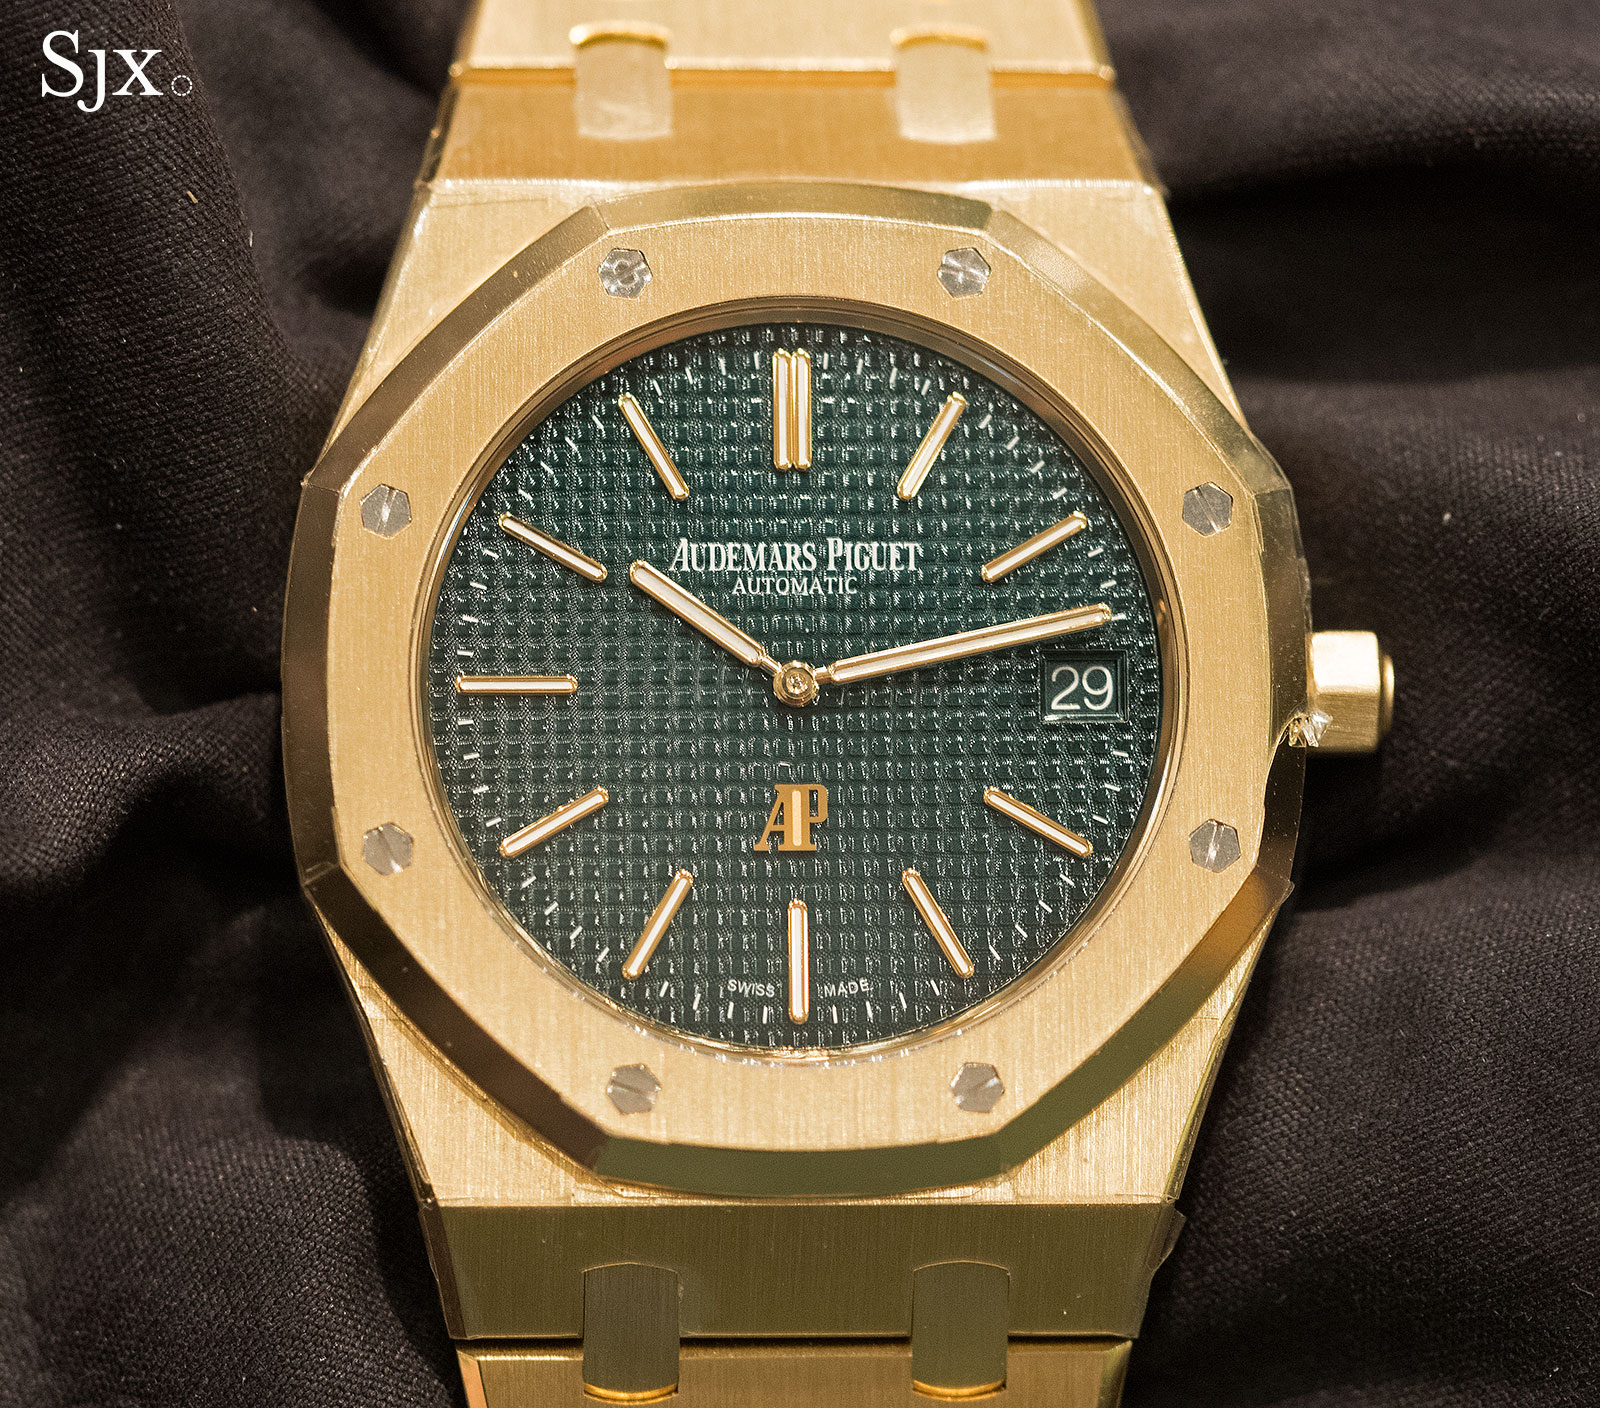 HandsOn with the Audemars Piguet Royal Oak ExtraThin Limited